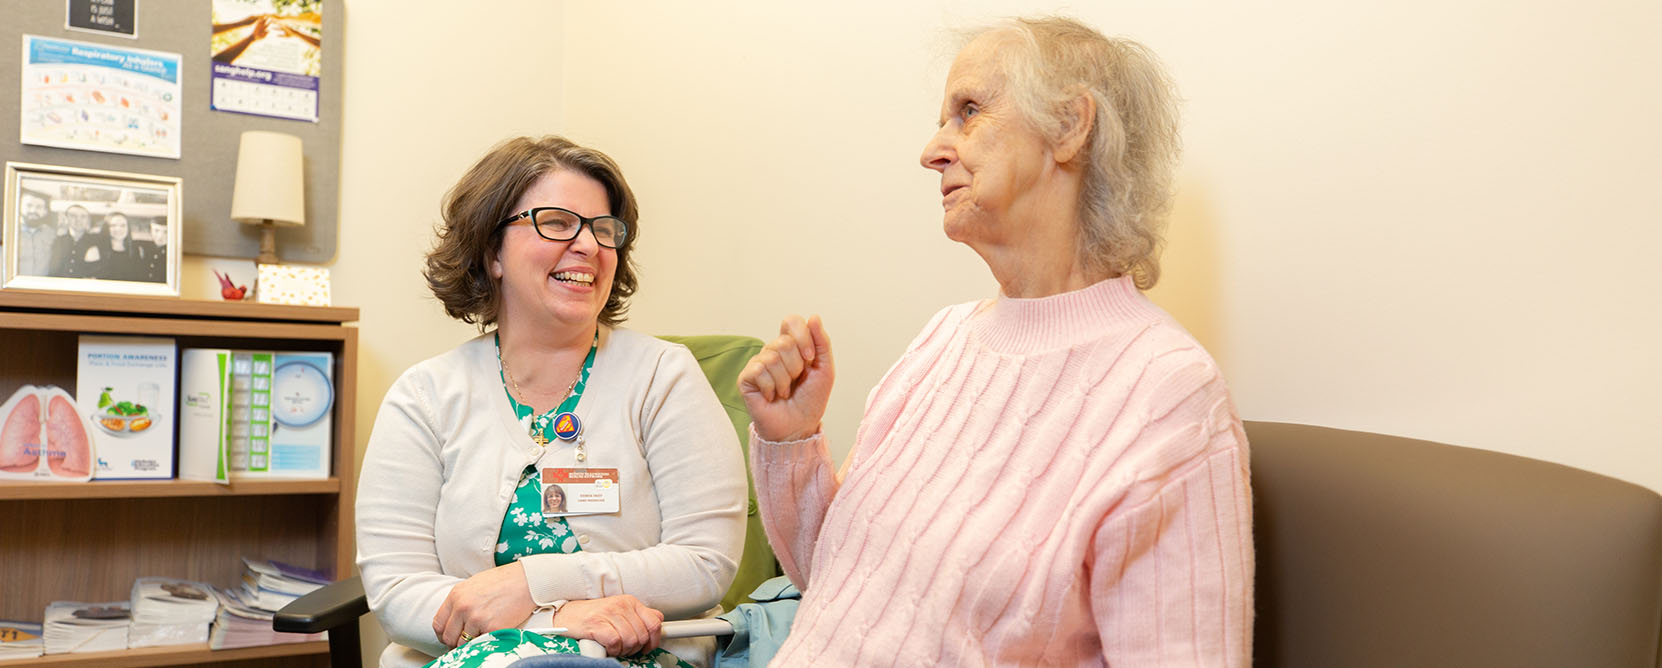 Older adult patient speaks with care manager